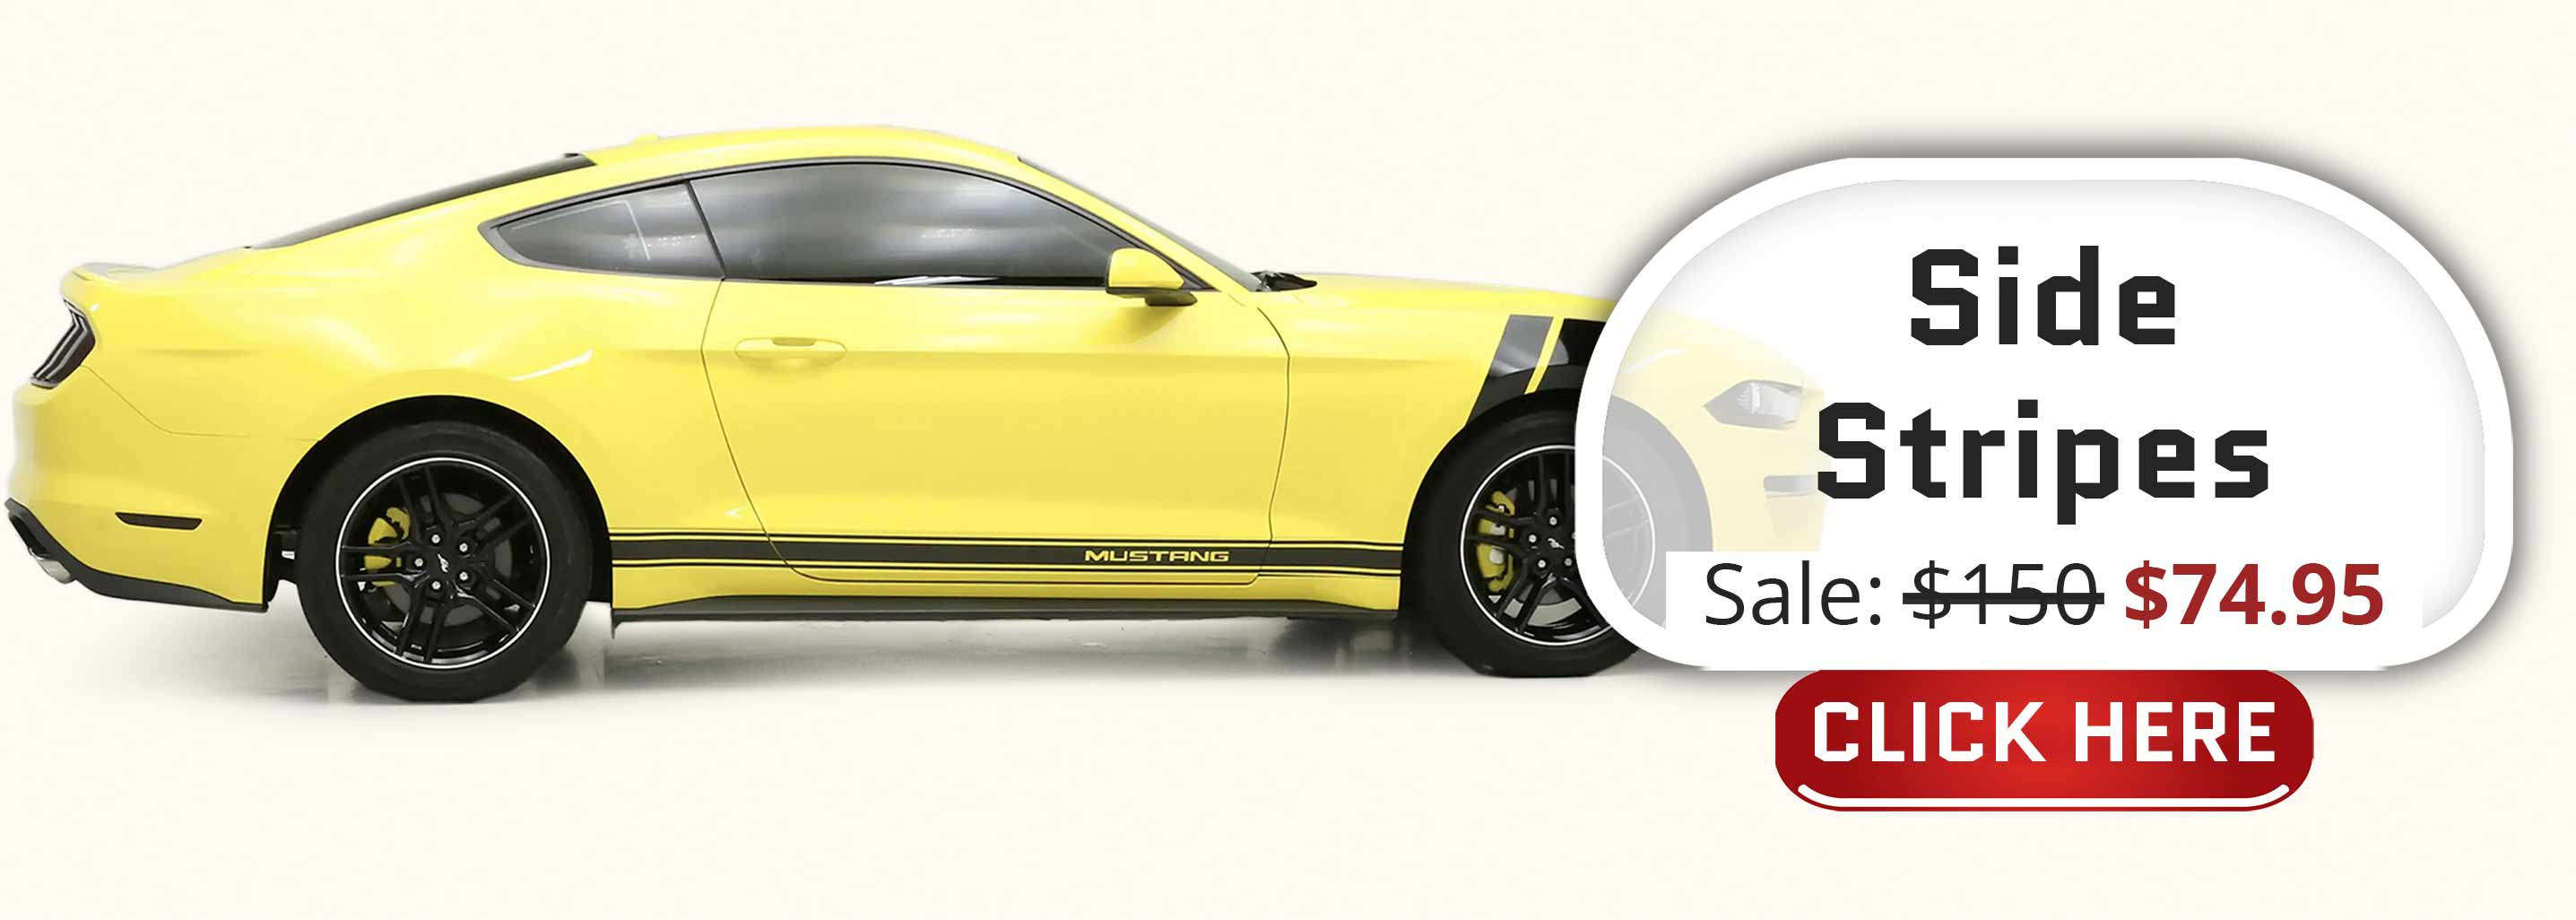 black Side stripes lower rocker panel decal with text pre-cut vinyl for sale